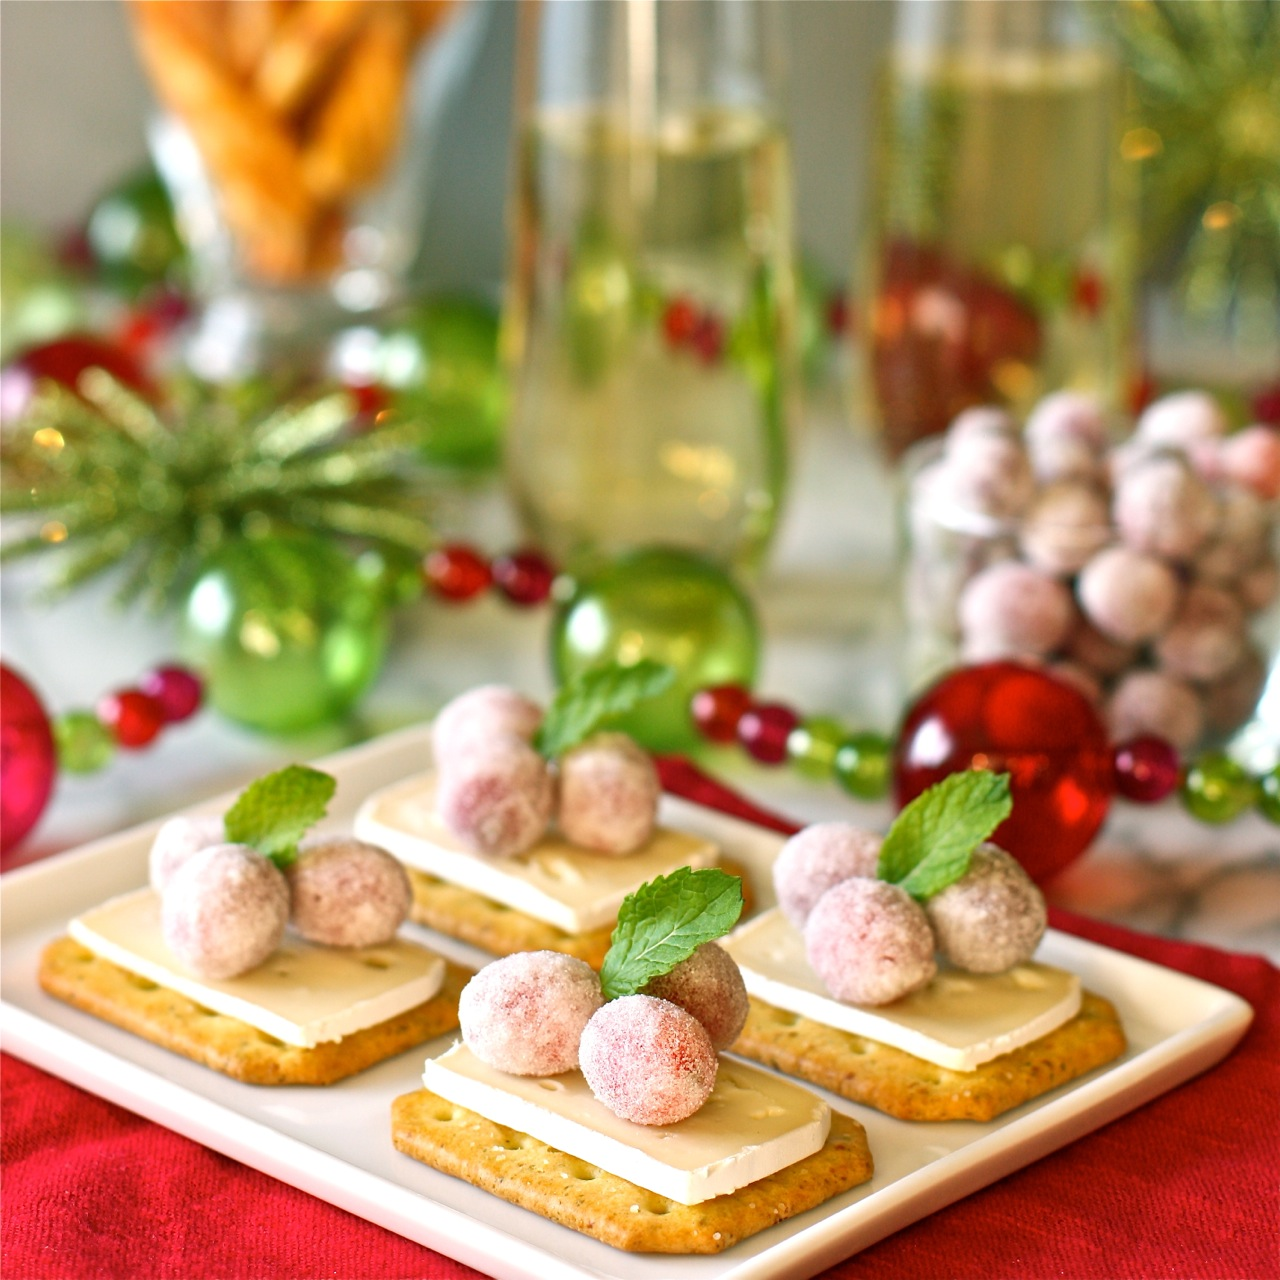 Easy Appetizers For Christmas Cocktail Party: Brie Bites With Sugared Cranberries